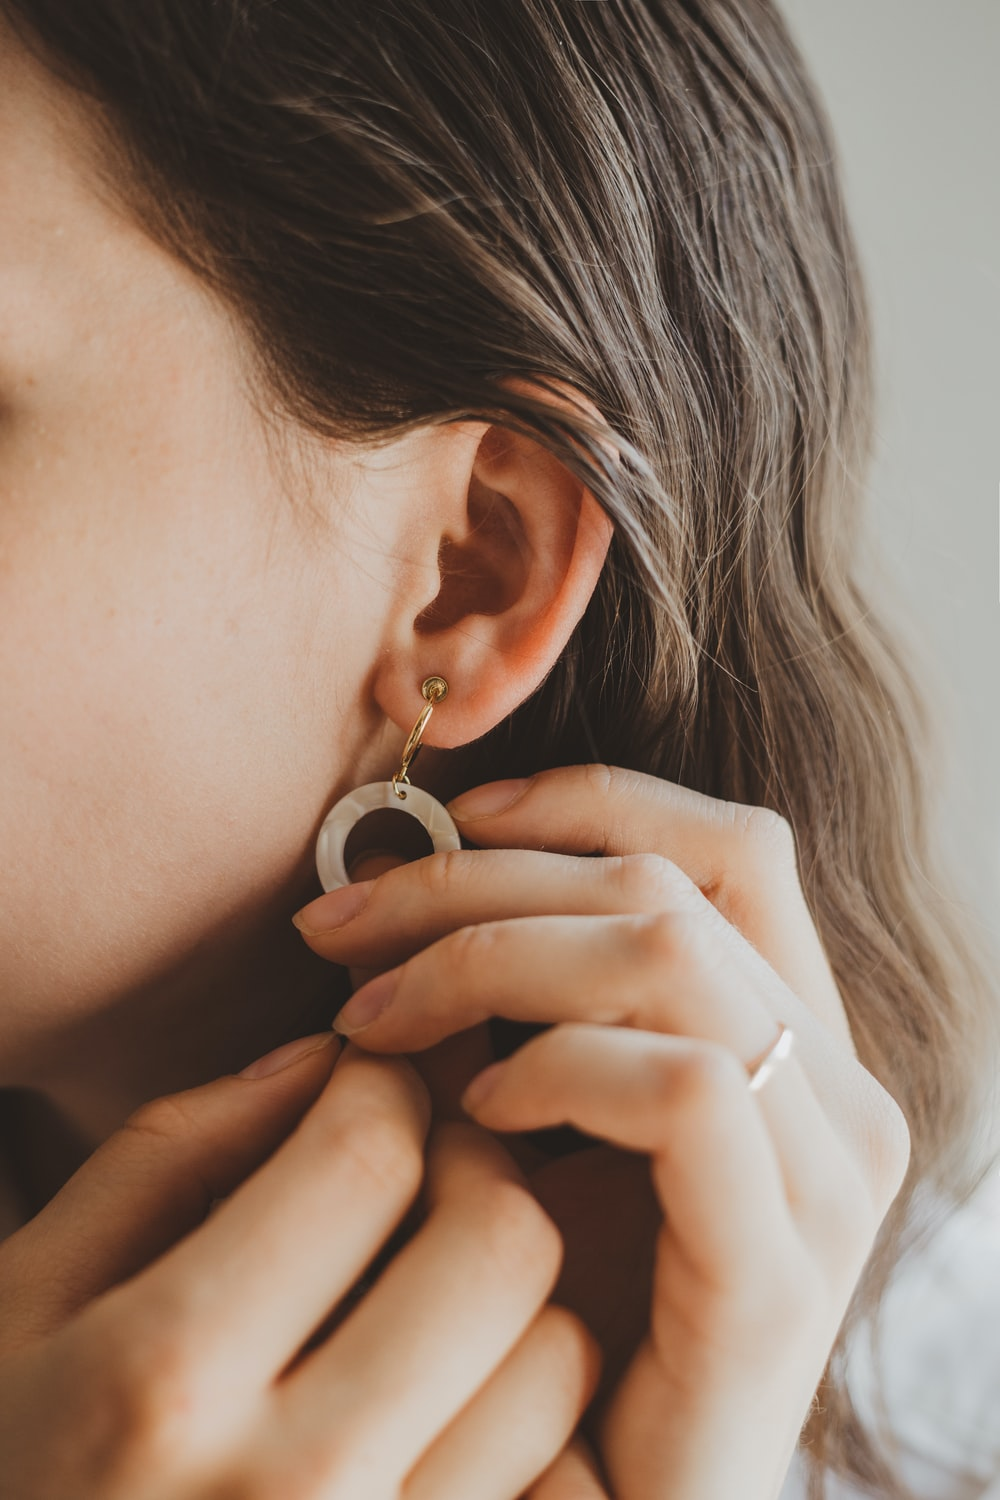 person touching earring